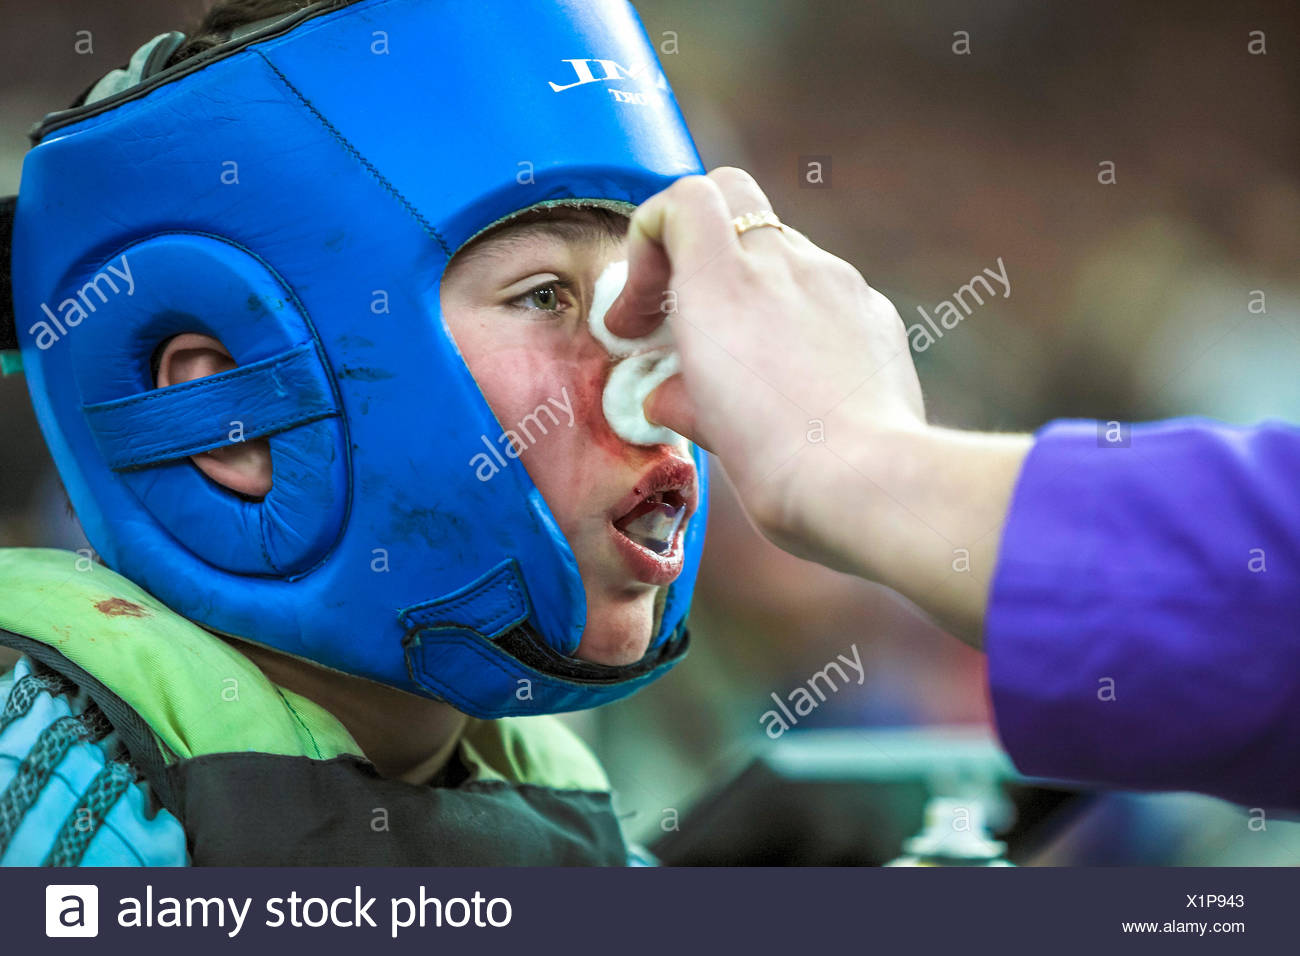 Caring For A Child's Bloody Nose After A Taekwondo Match - Stock Image